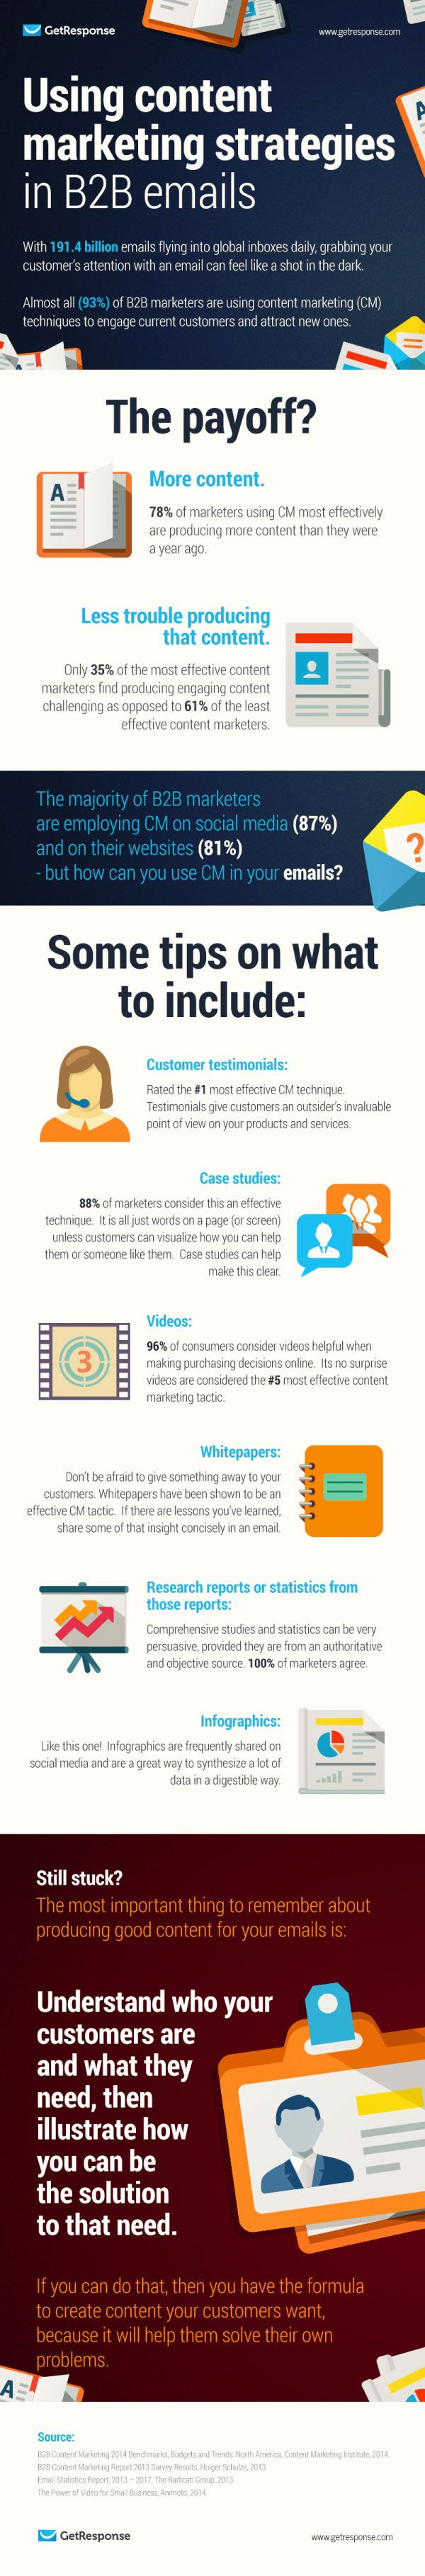 Using Content Marketing Strategies in B2B Emails - Infographics - Website Magazine